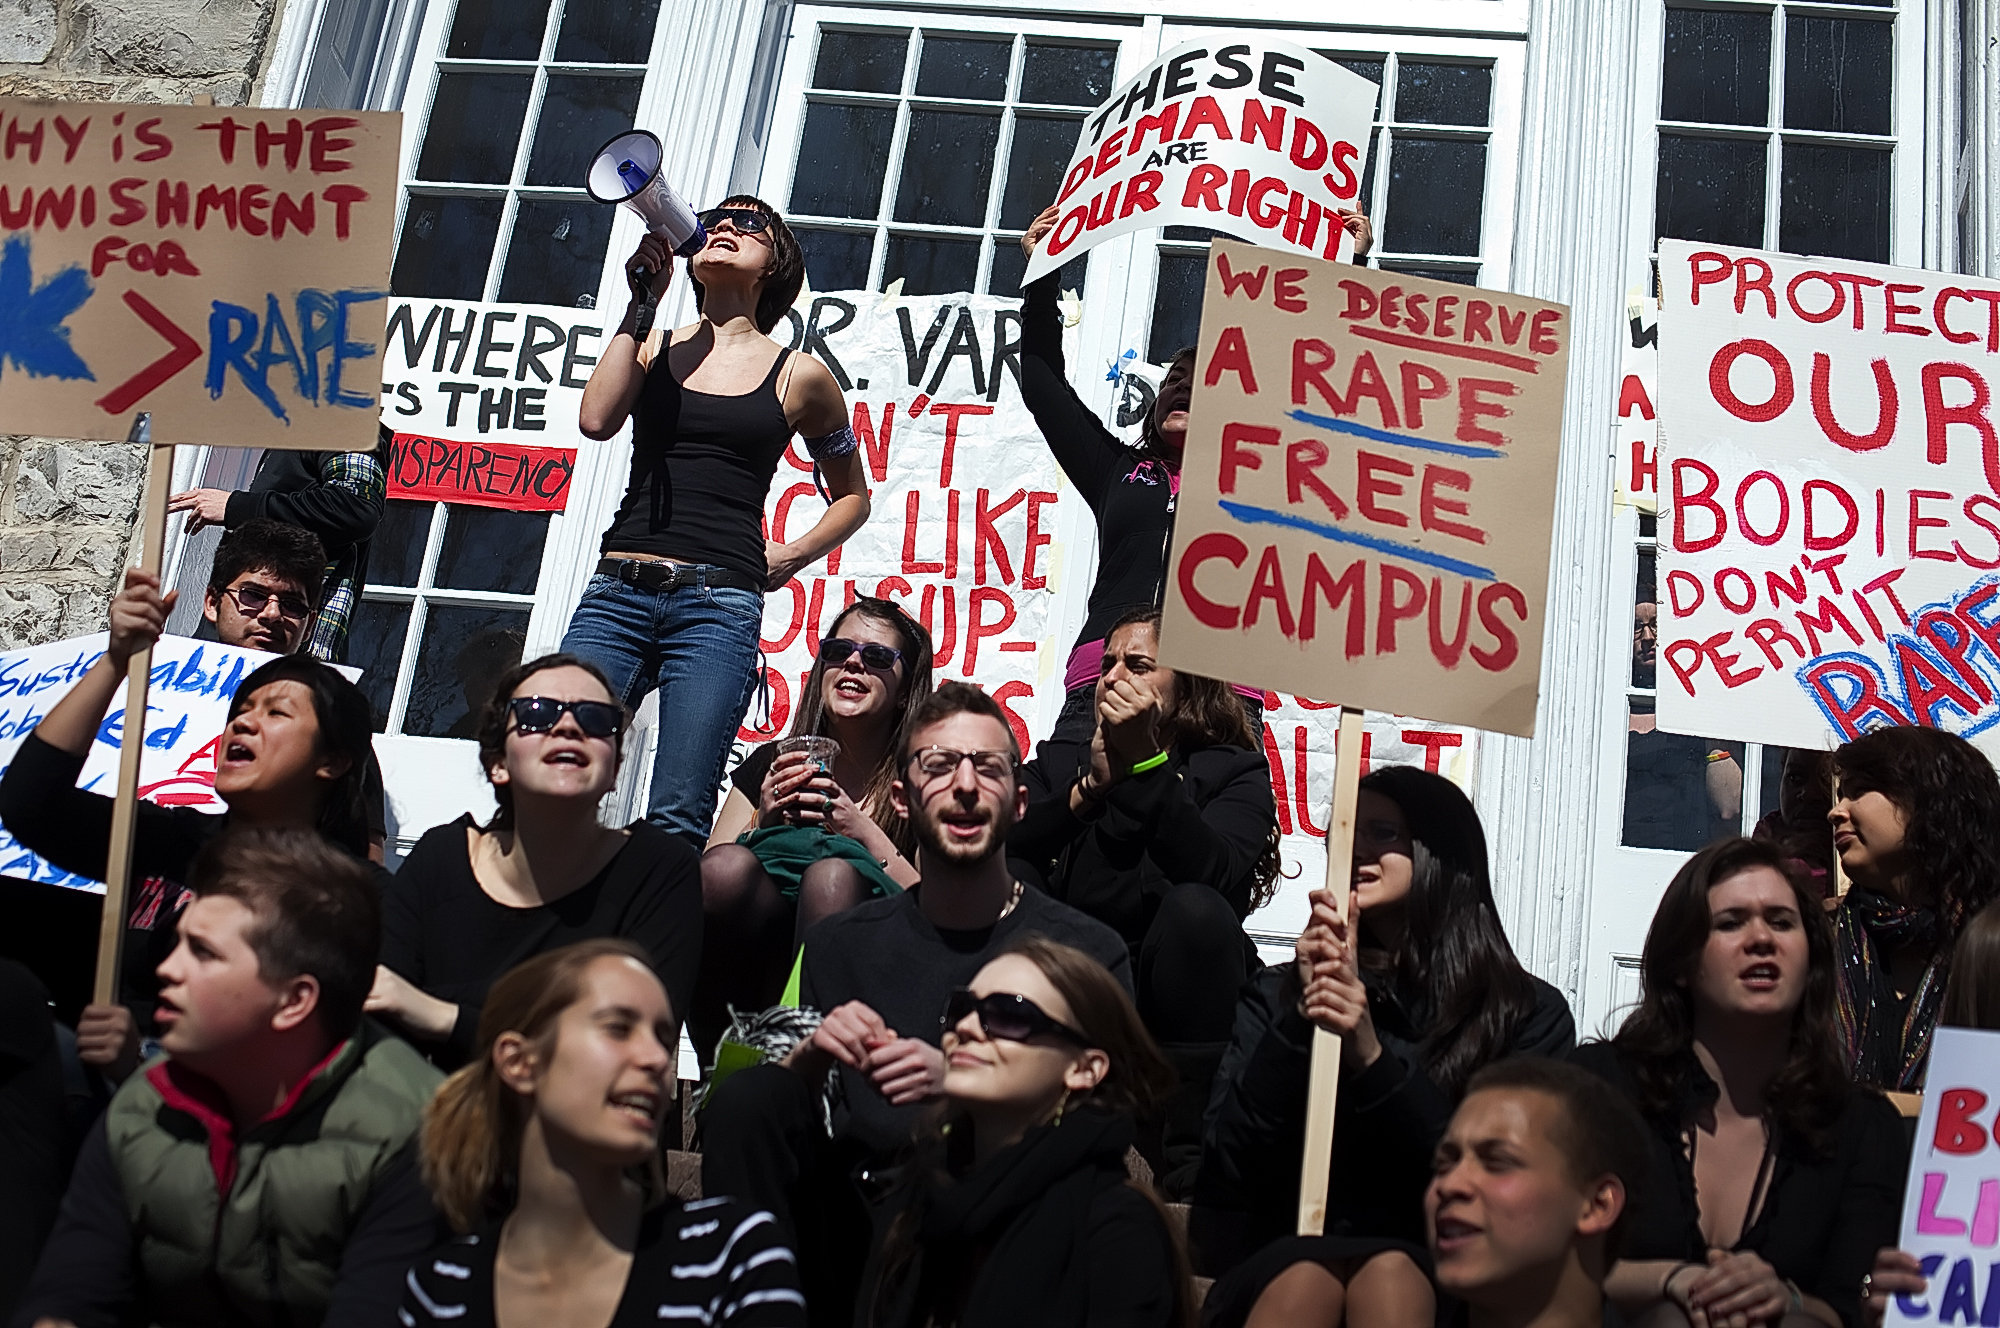 anti-rape protest at Columbia